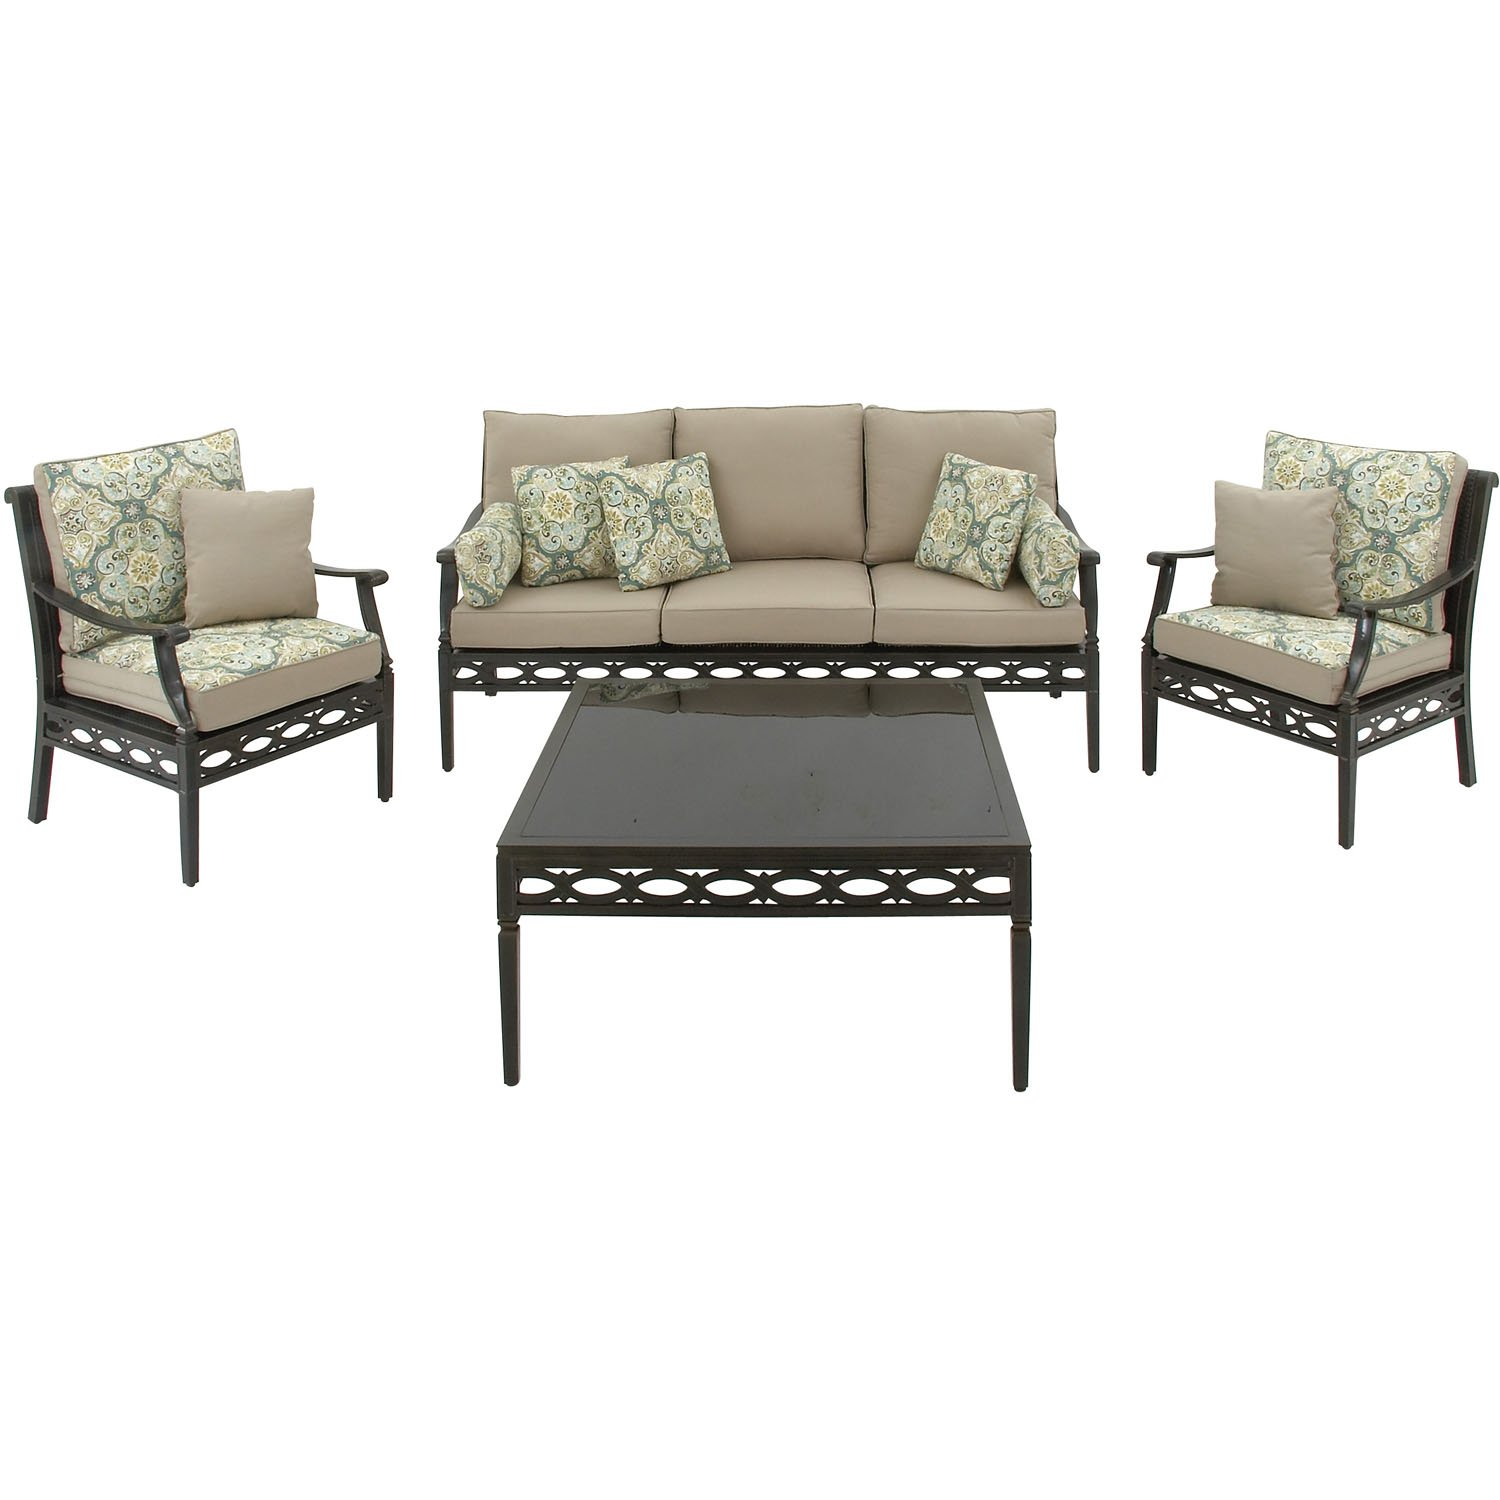 Amazon.com : Hanover CORTEZ4PC 4 Piece Outdoor Cortez Patio Set : Garden U0026  Outdoor